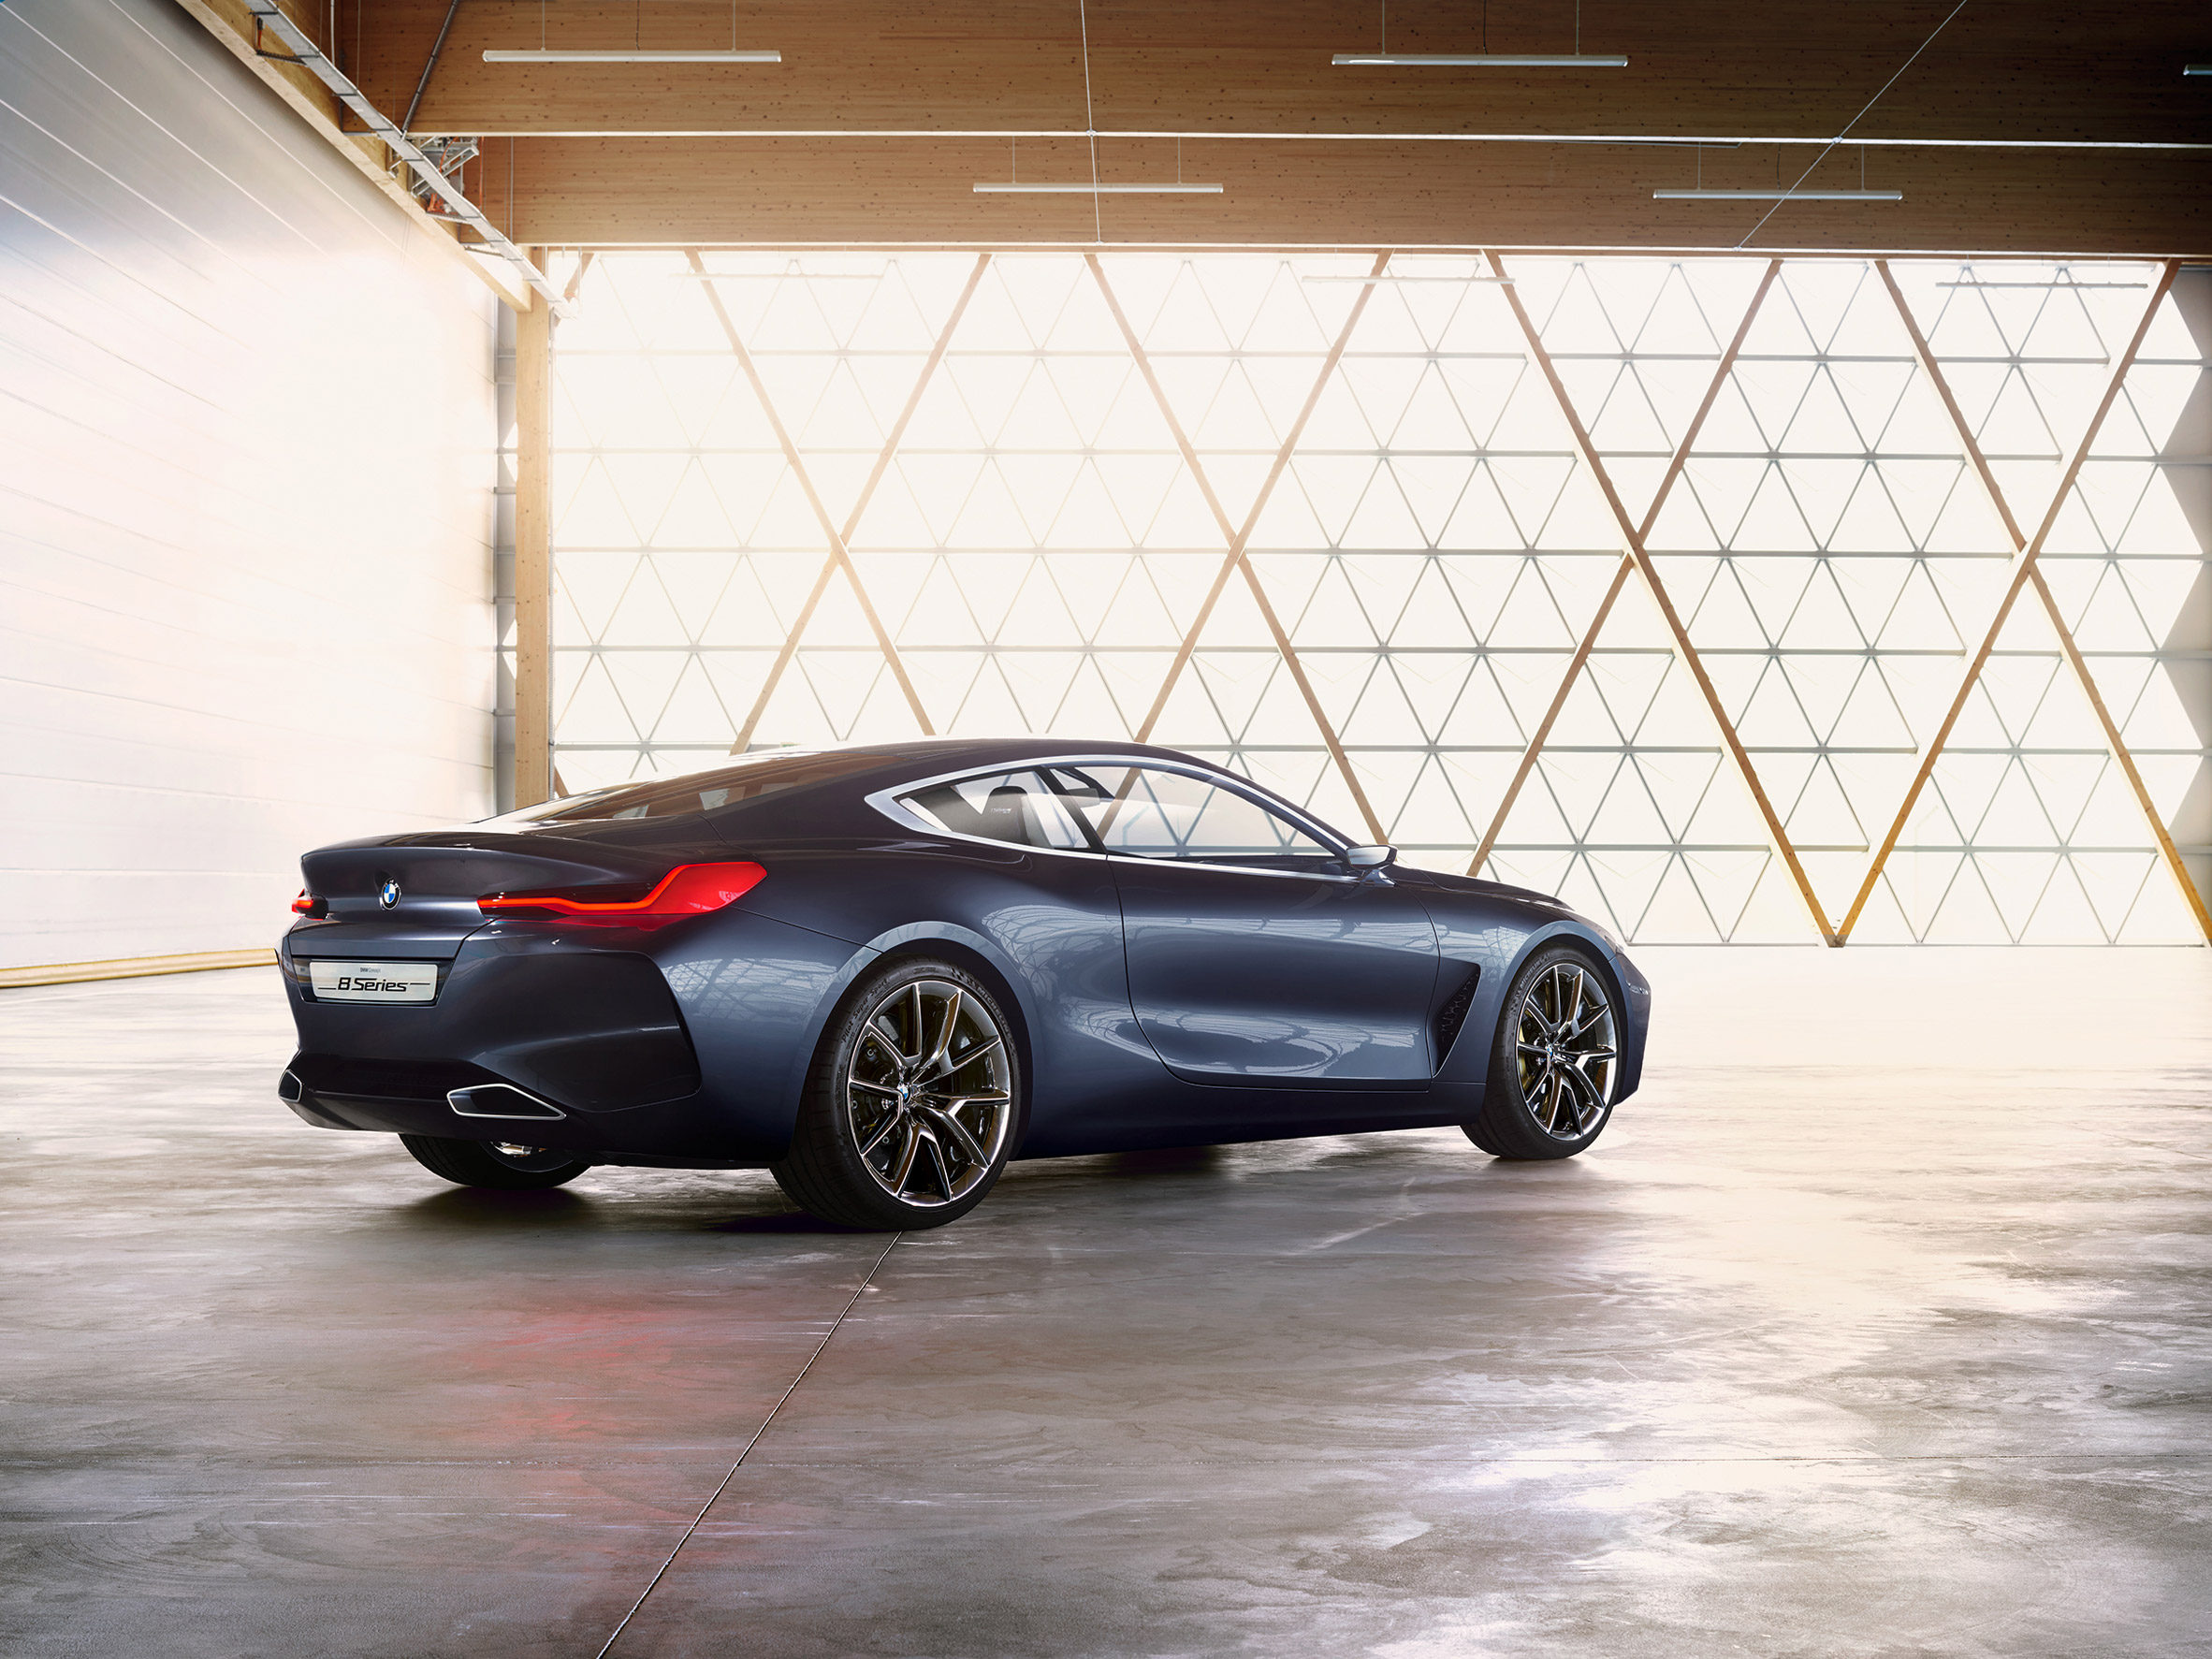 "BMW unveils Concept 8 Series coupe designed as a ""driver's car"""